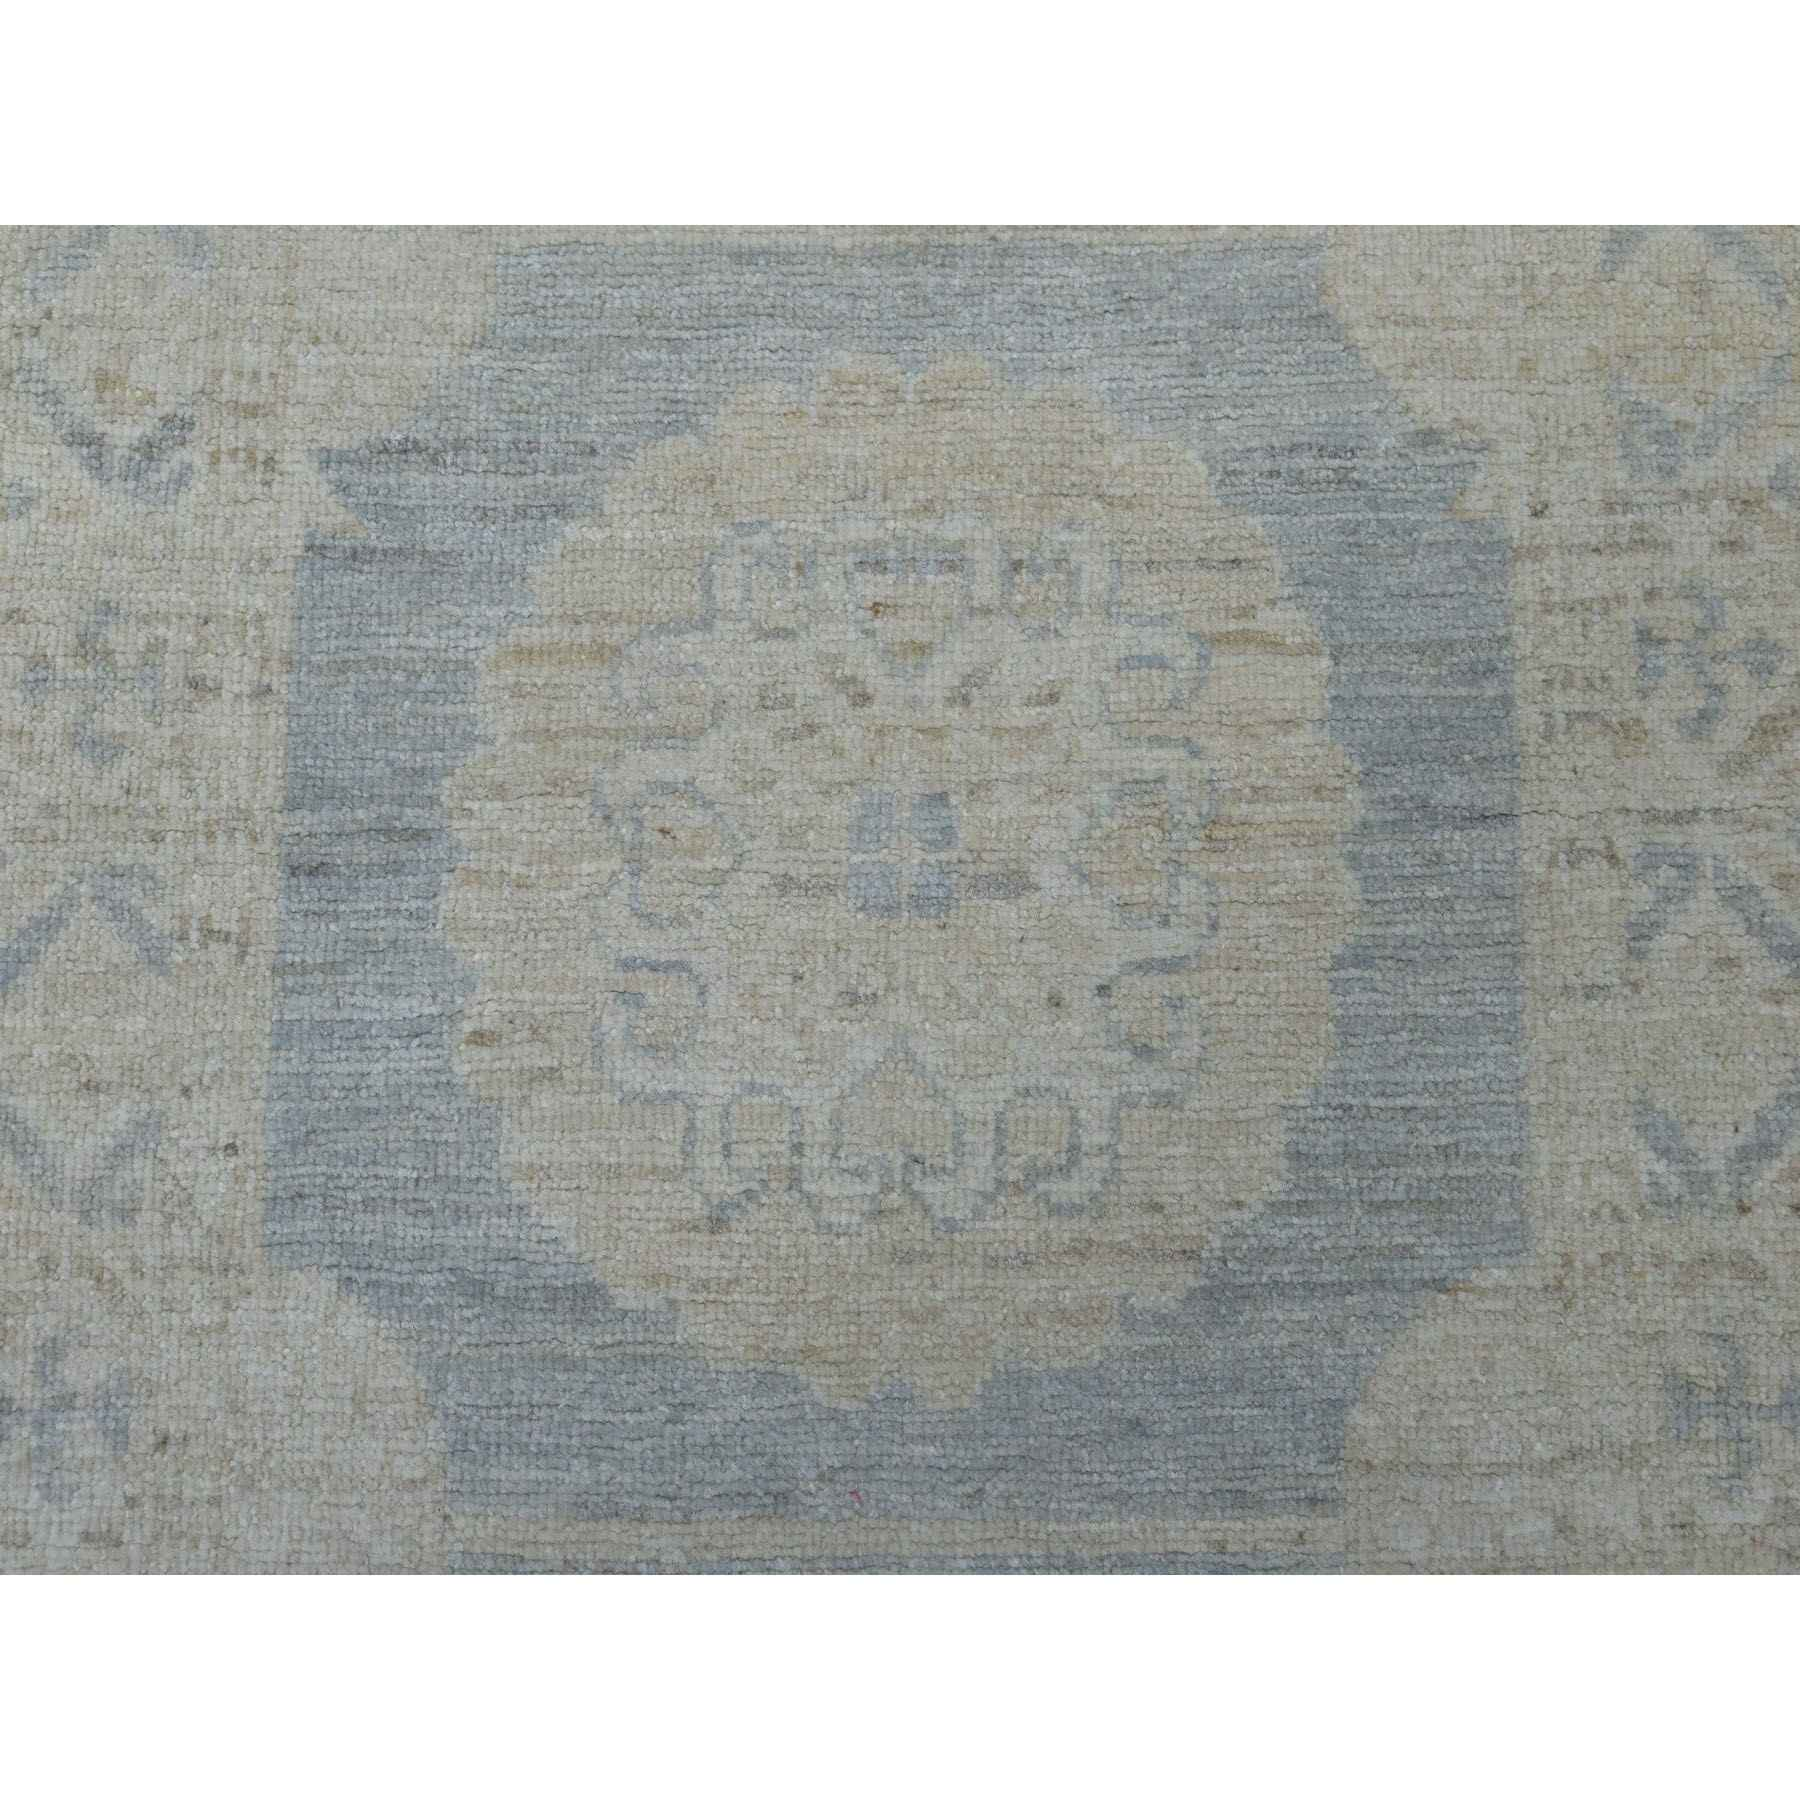 Oushak-And-Peshawar-Hand-Knotted-Rug-255470